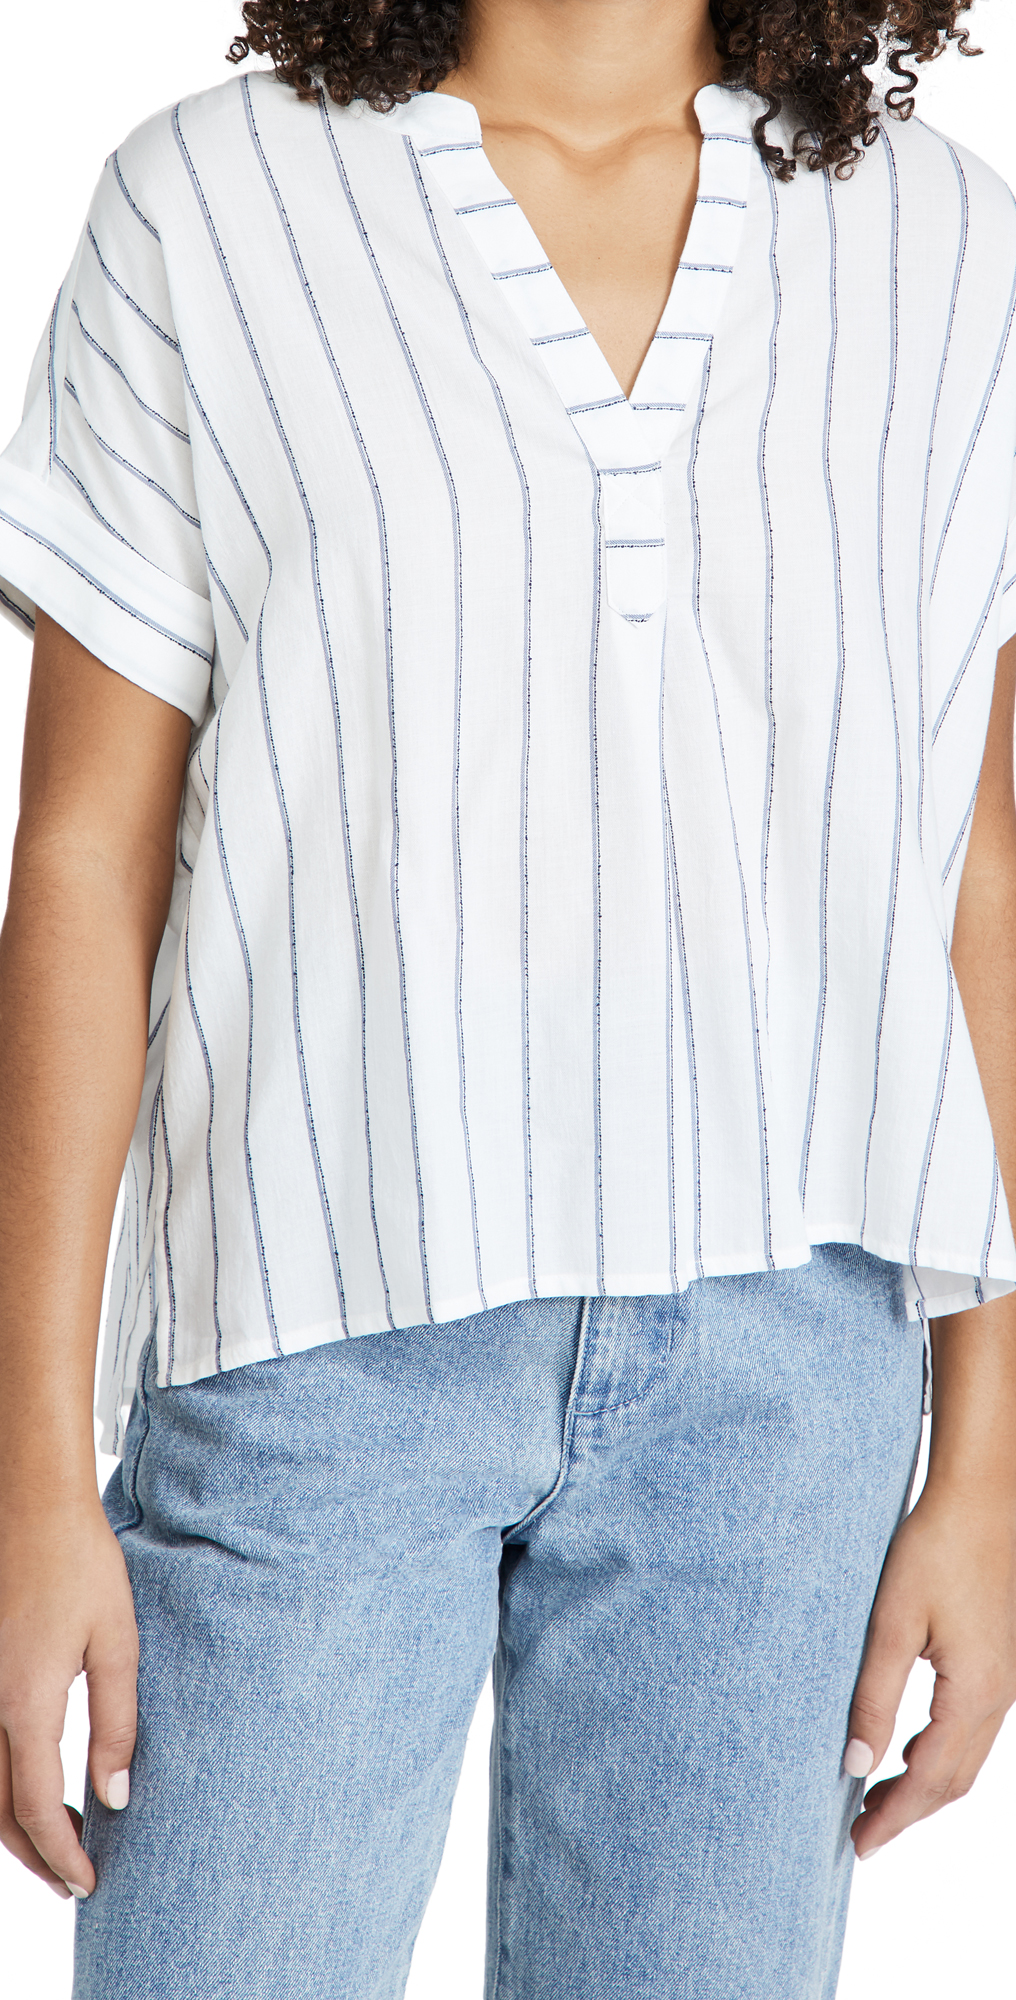 Madewell Lakeline Popover Shirt in Stripe